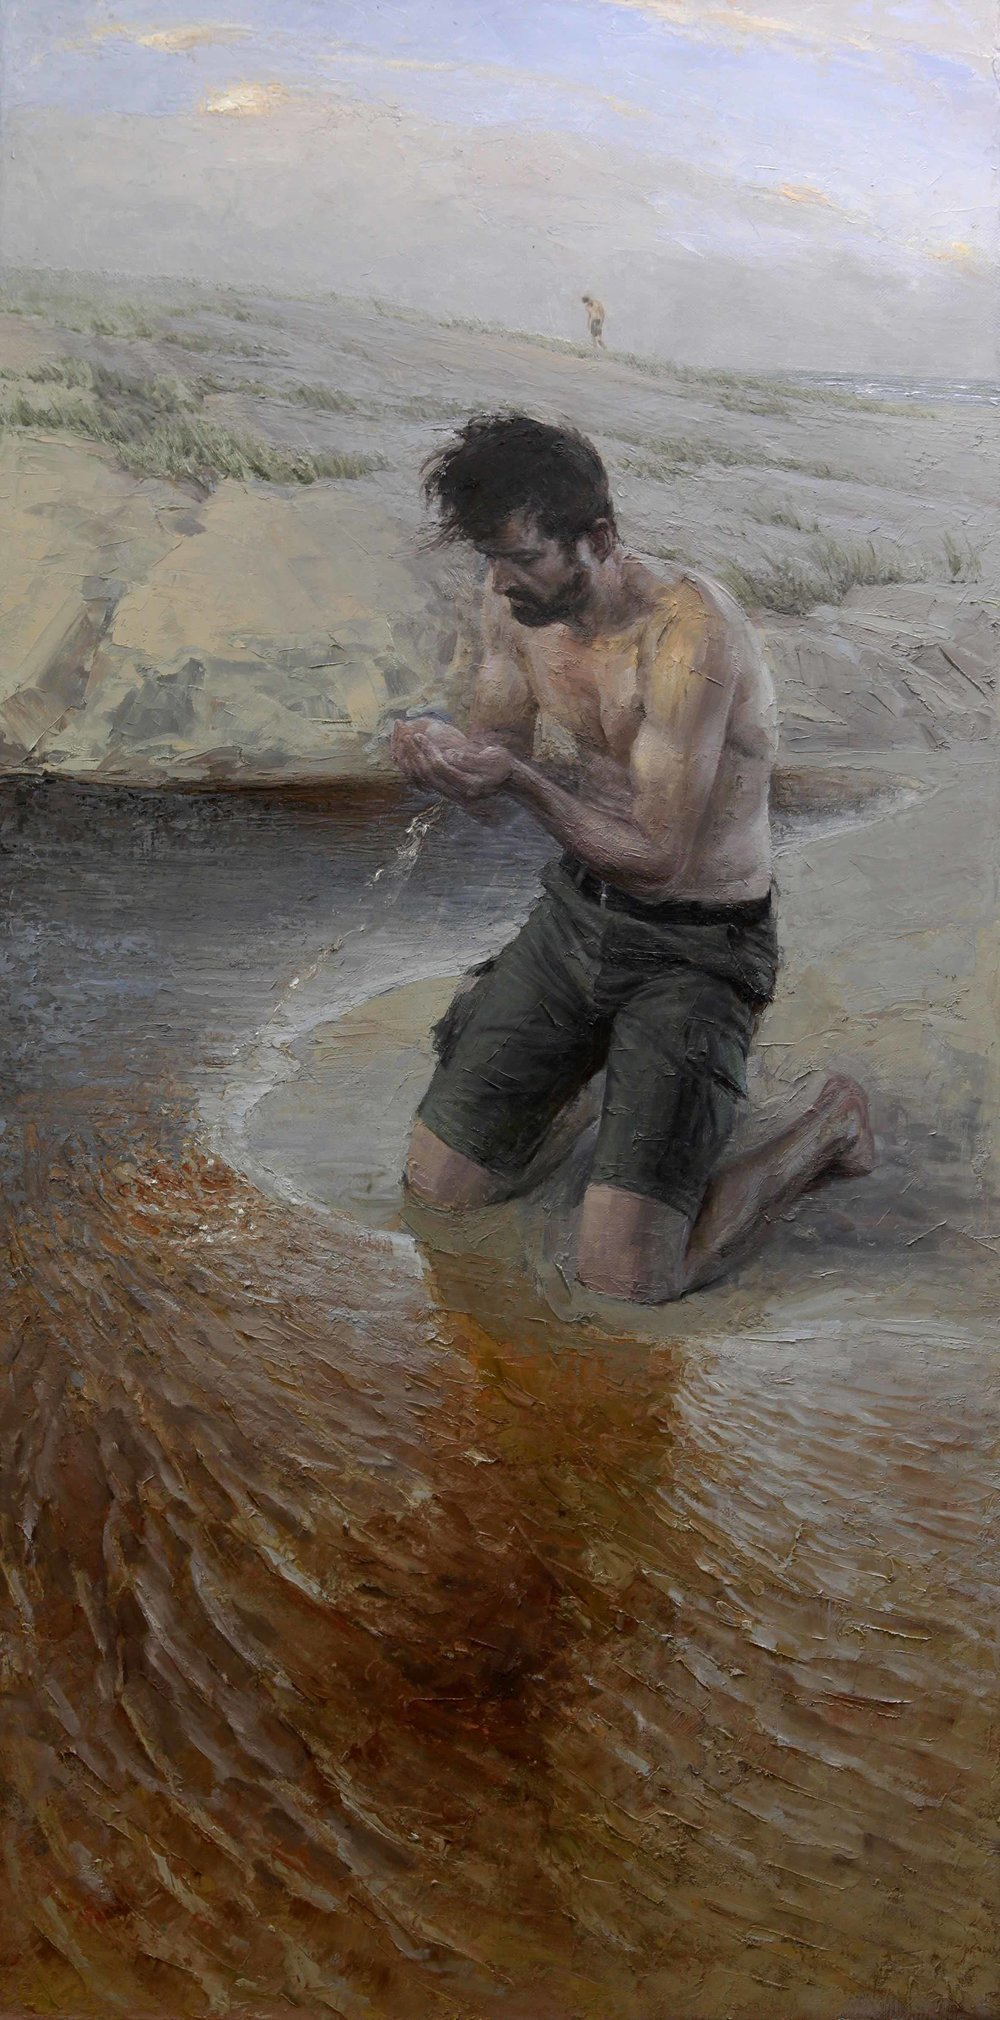 Finding Freshwater_Scott Breton_Oil on Linen_122x61cm_$2400.jpg